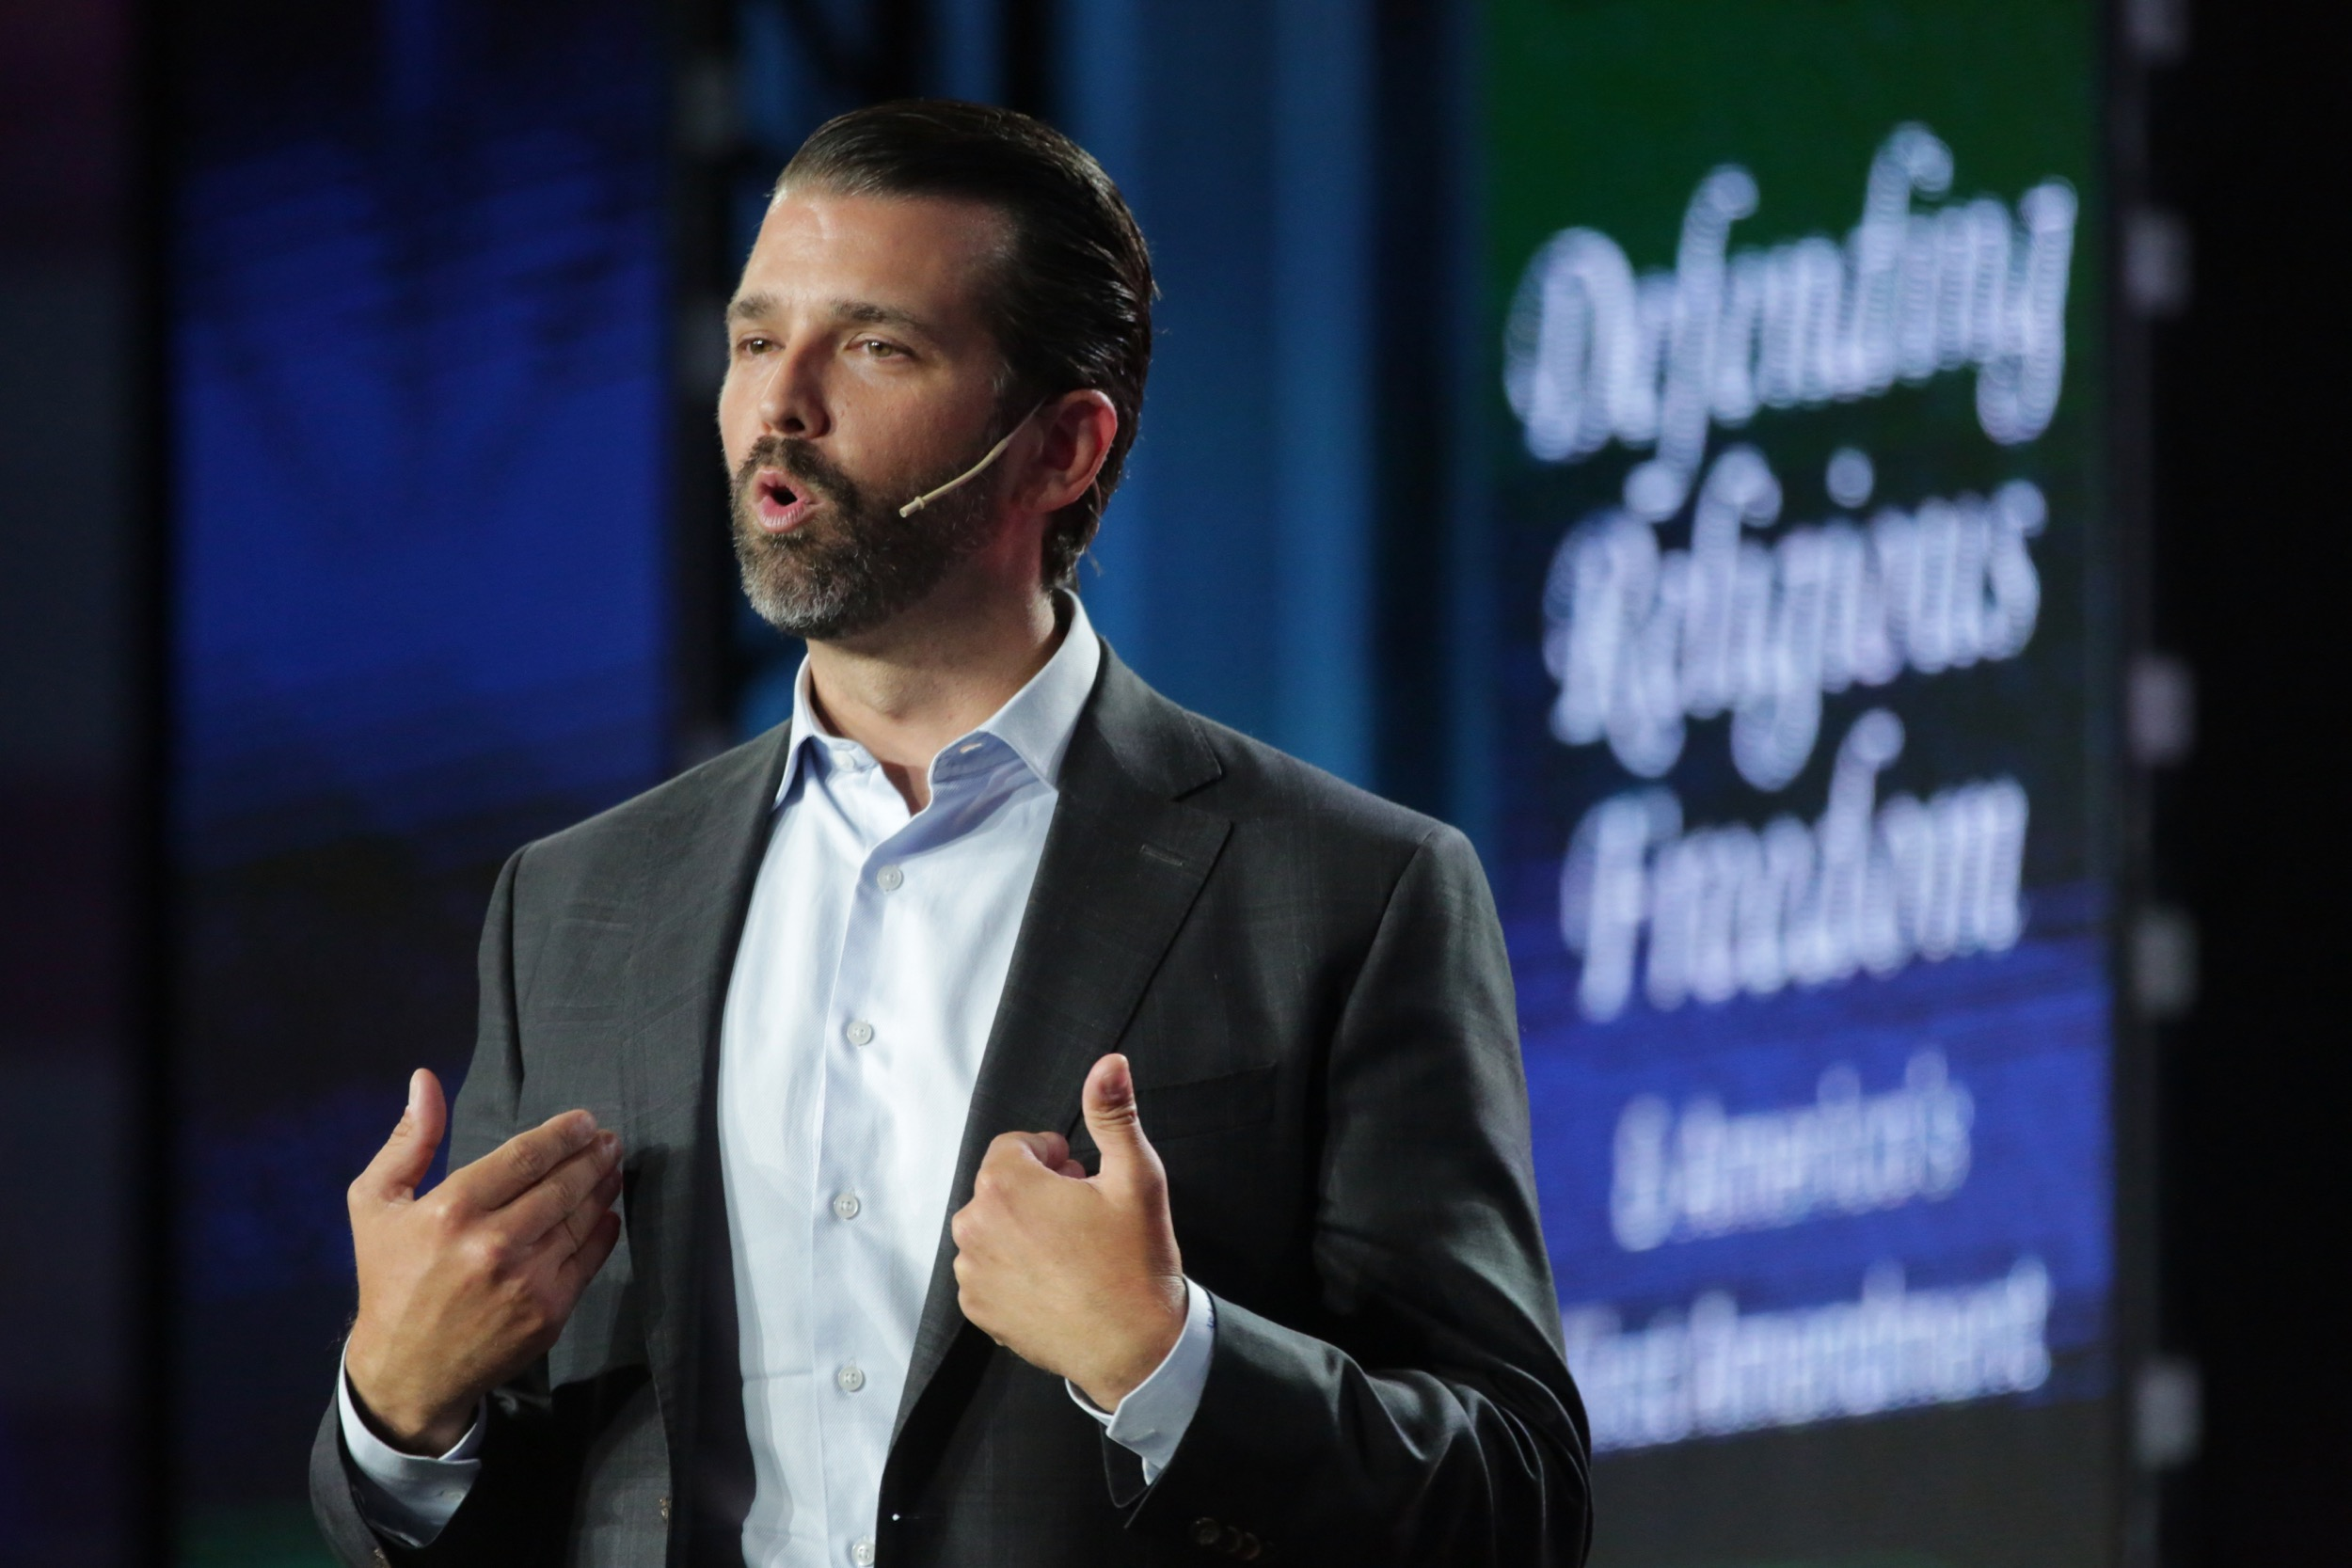 Western Conservative Summit 2019 Donald Trump Jr.